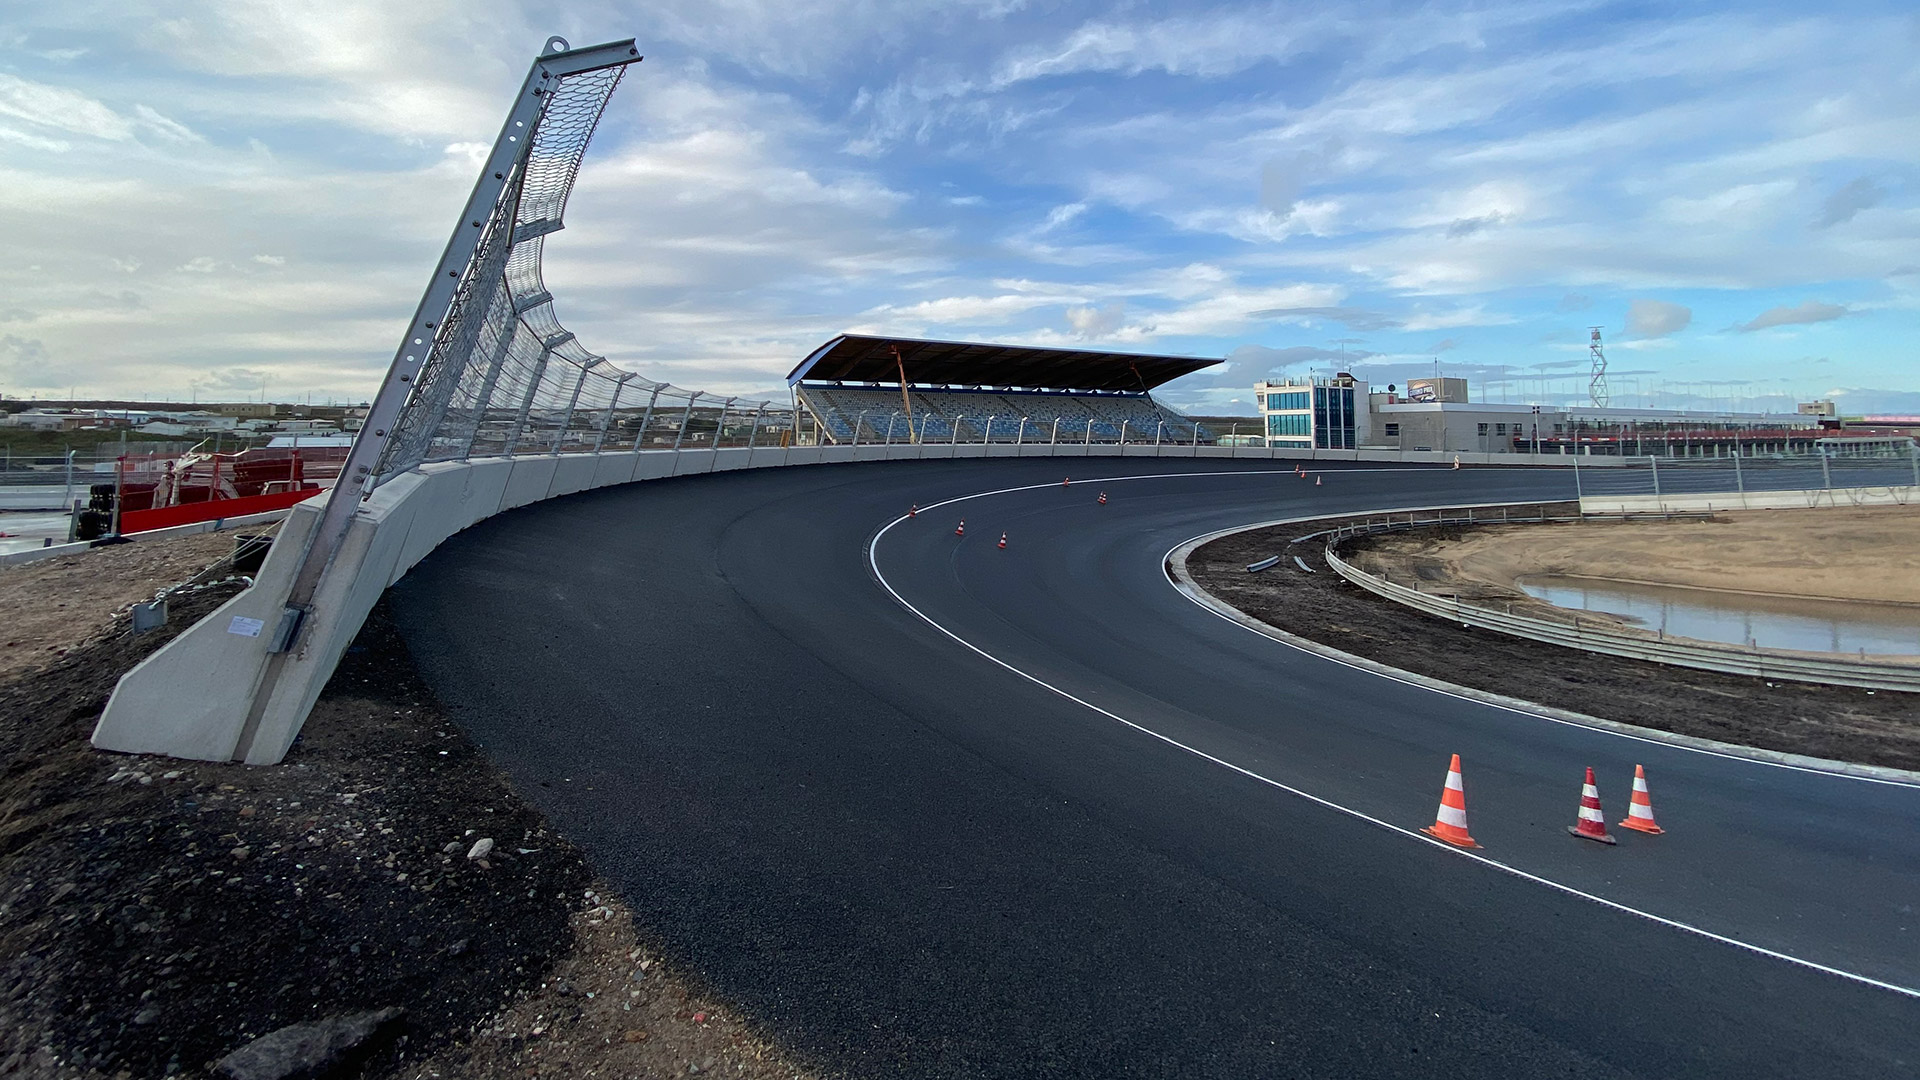 First Images Of Zandvoort S Completed Banked Corners Revealed Ahead Of 2020 Dutch Grand Prix Formula 1